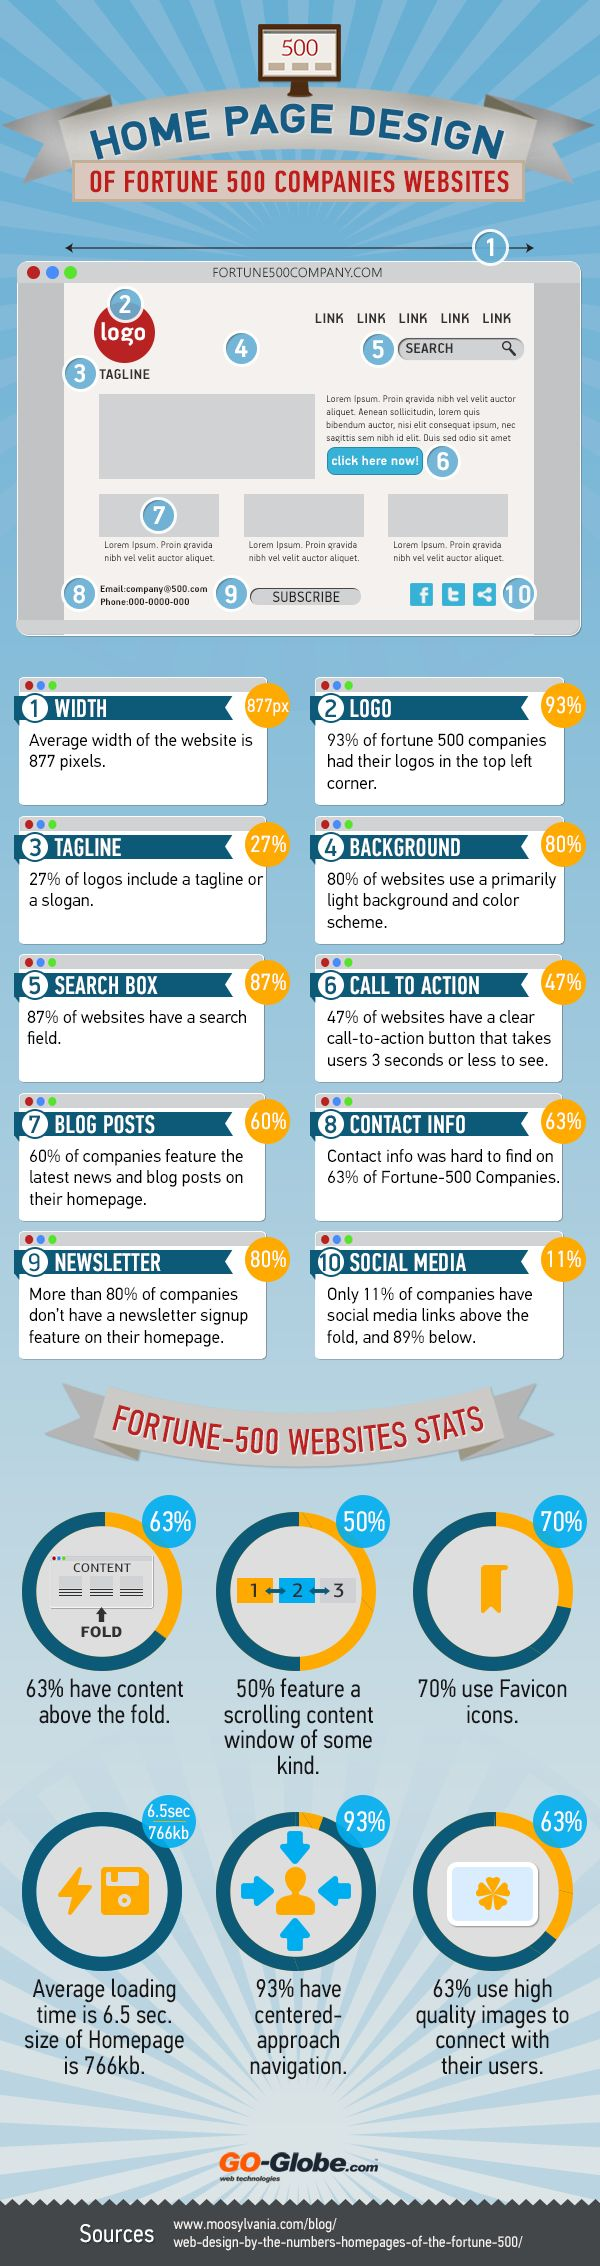 Home Page Design of Fortune 500 Companies Websites[INFOGRAPHIC]